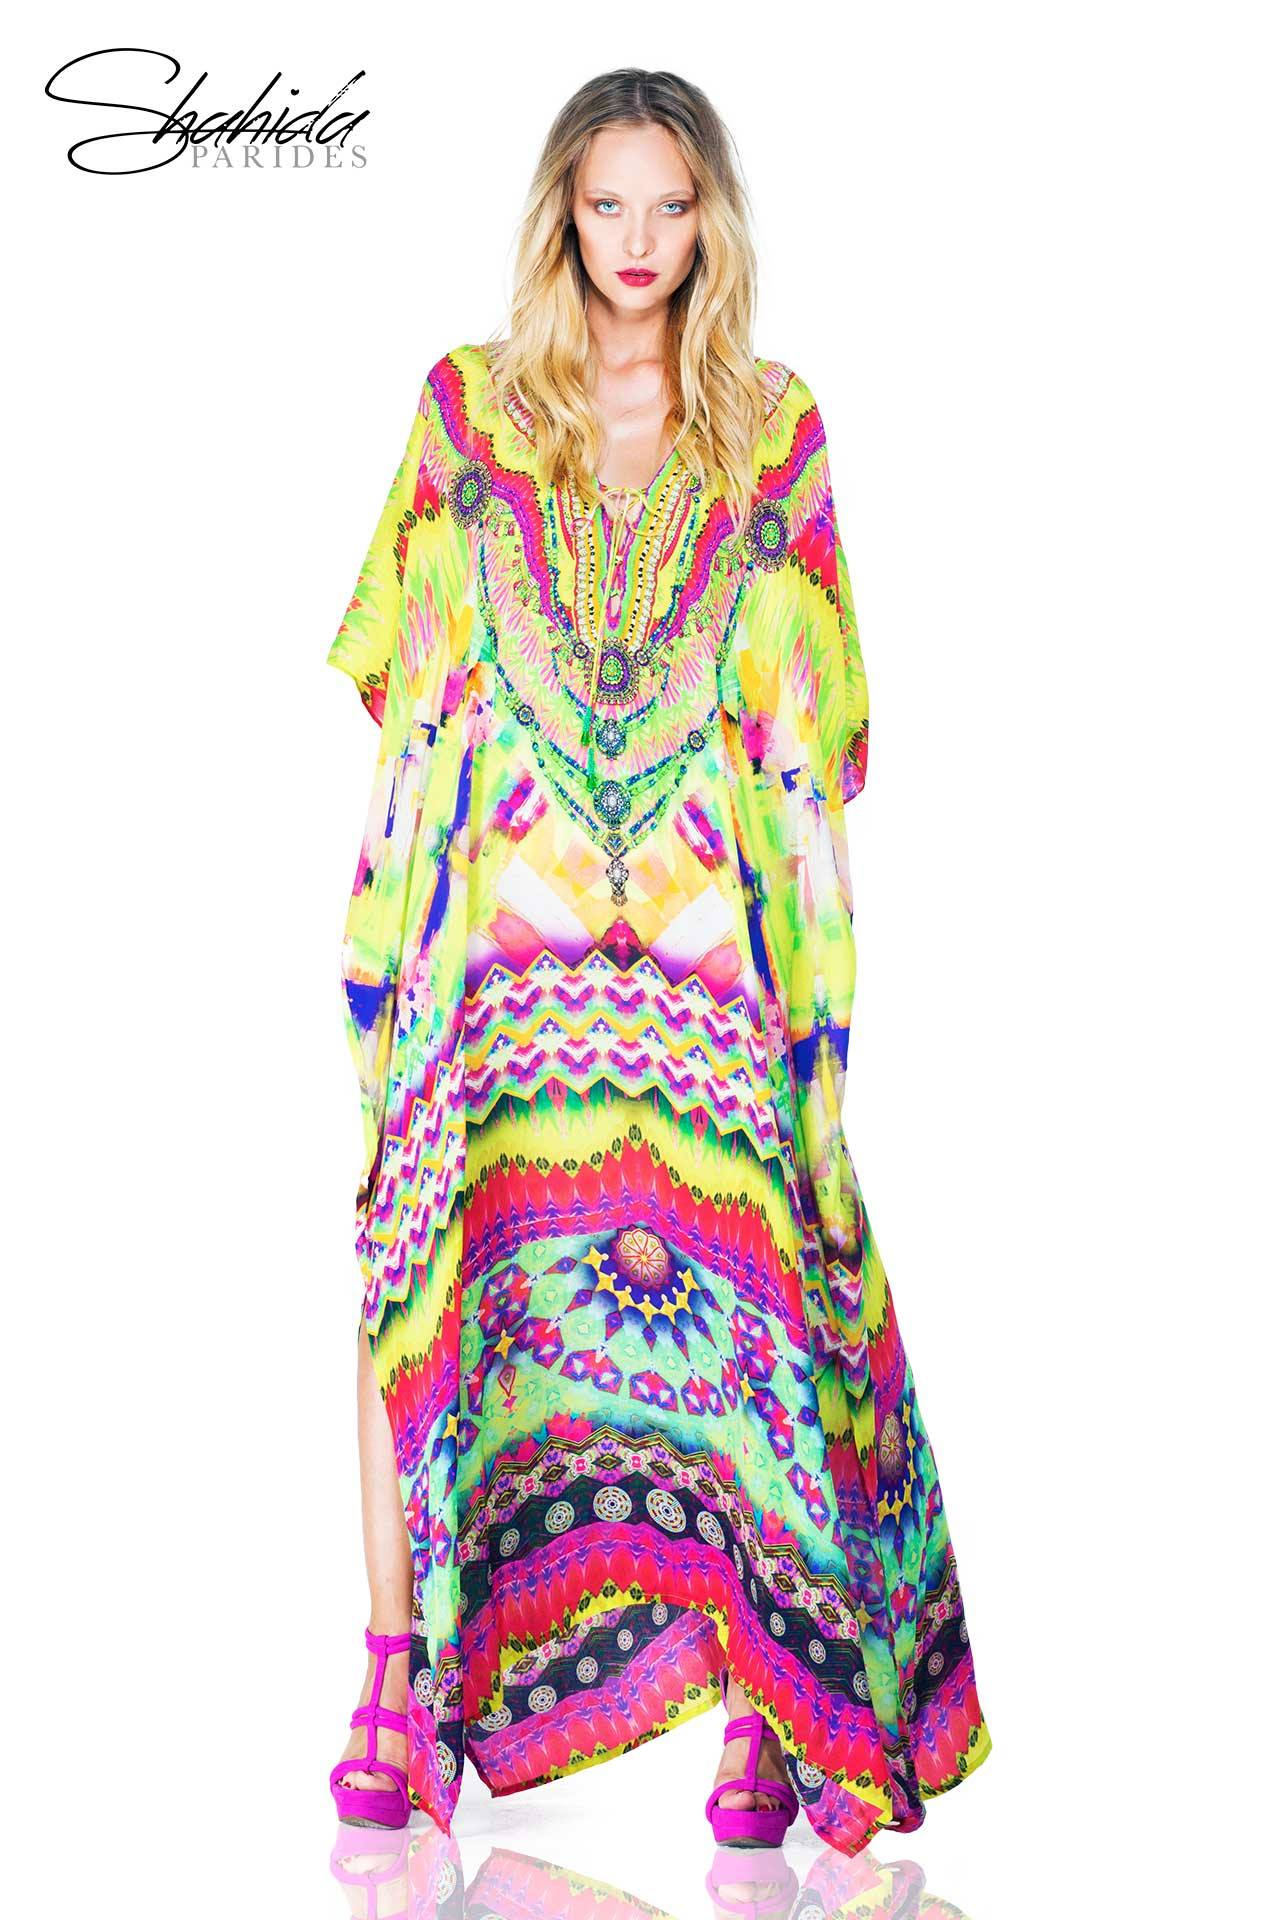 shahida-parides-yellow-kaftan-as-seen-on-kyle-richards